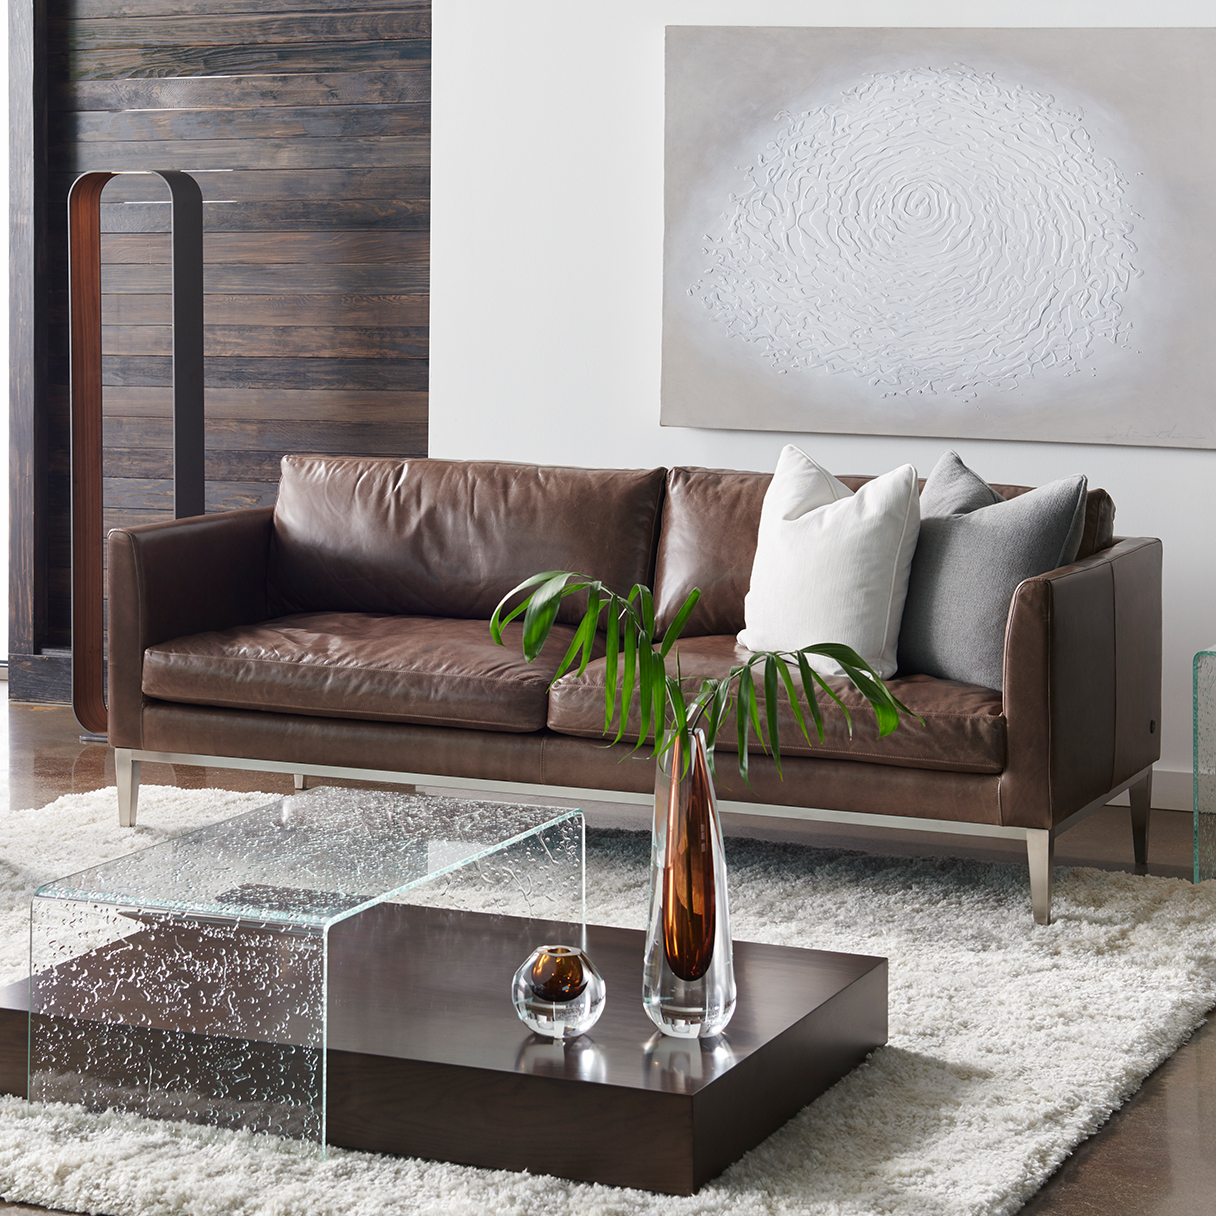 Leather Furniture and Decor - Cabot House Furniture and Design